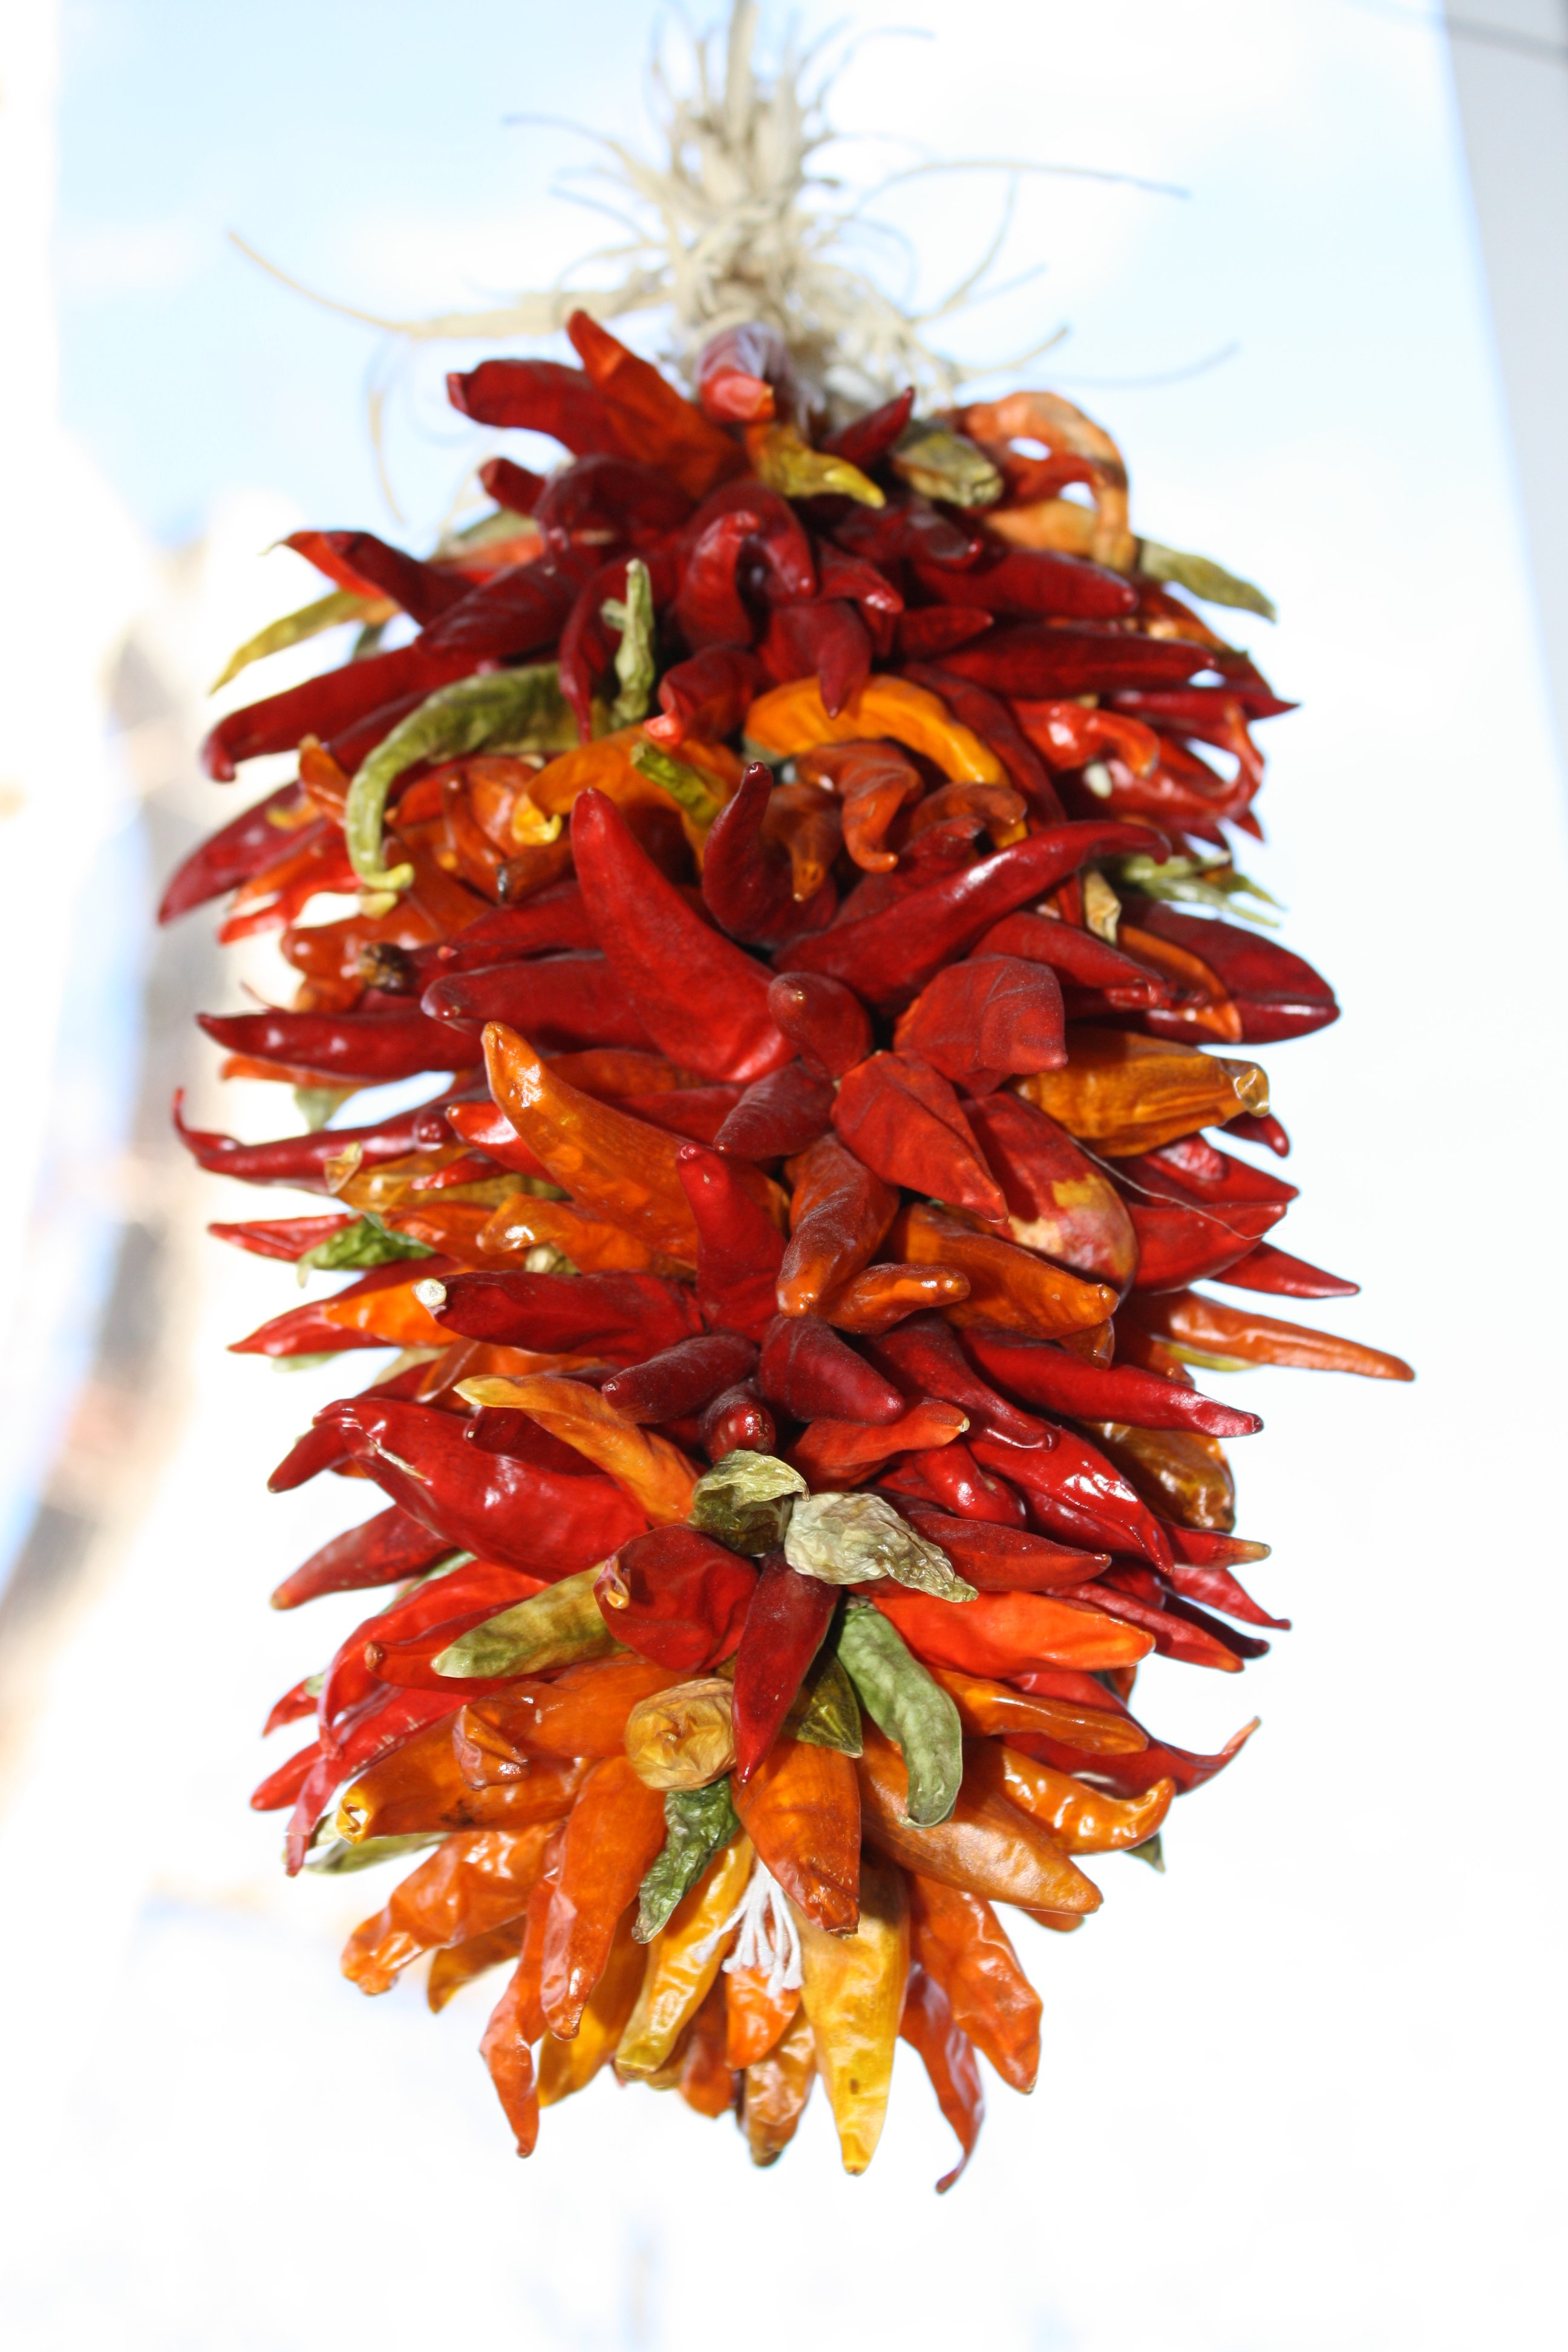 Hanging Chili Peppers Ristra Decoration Picture.